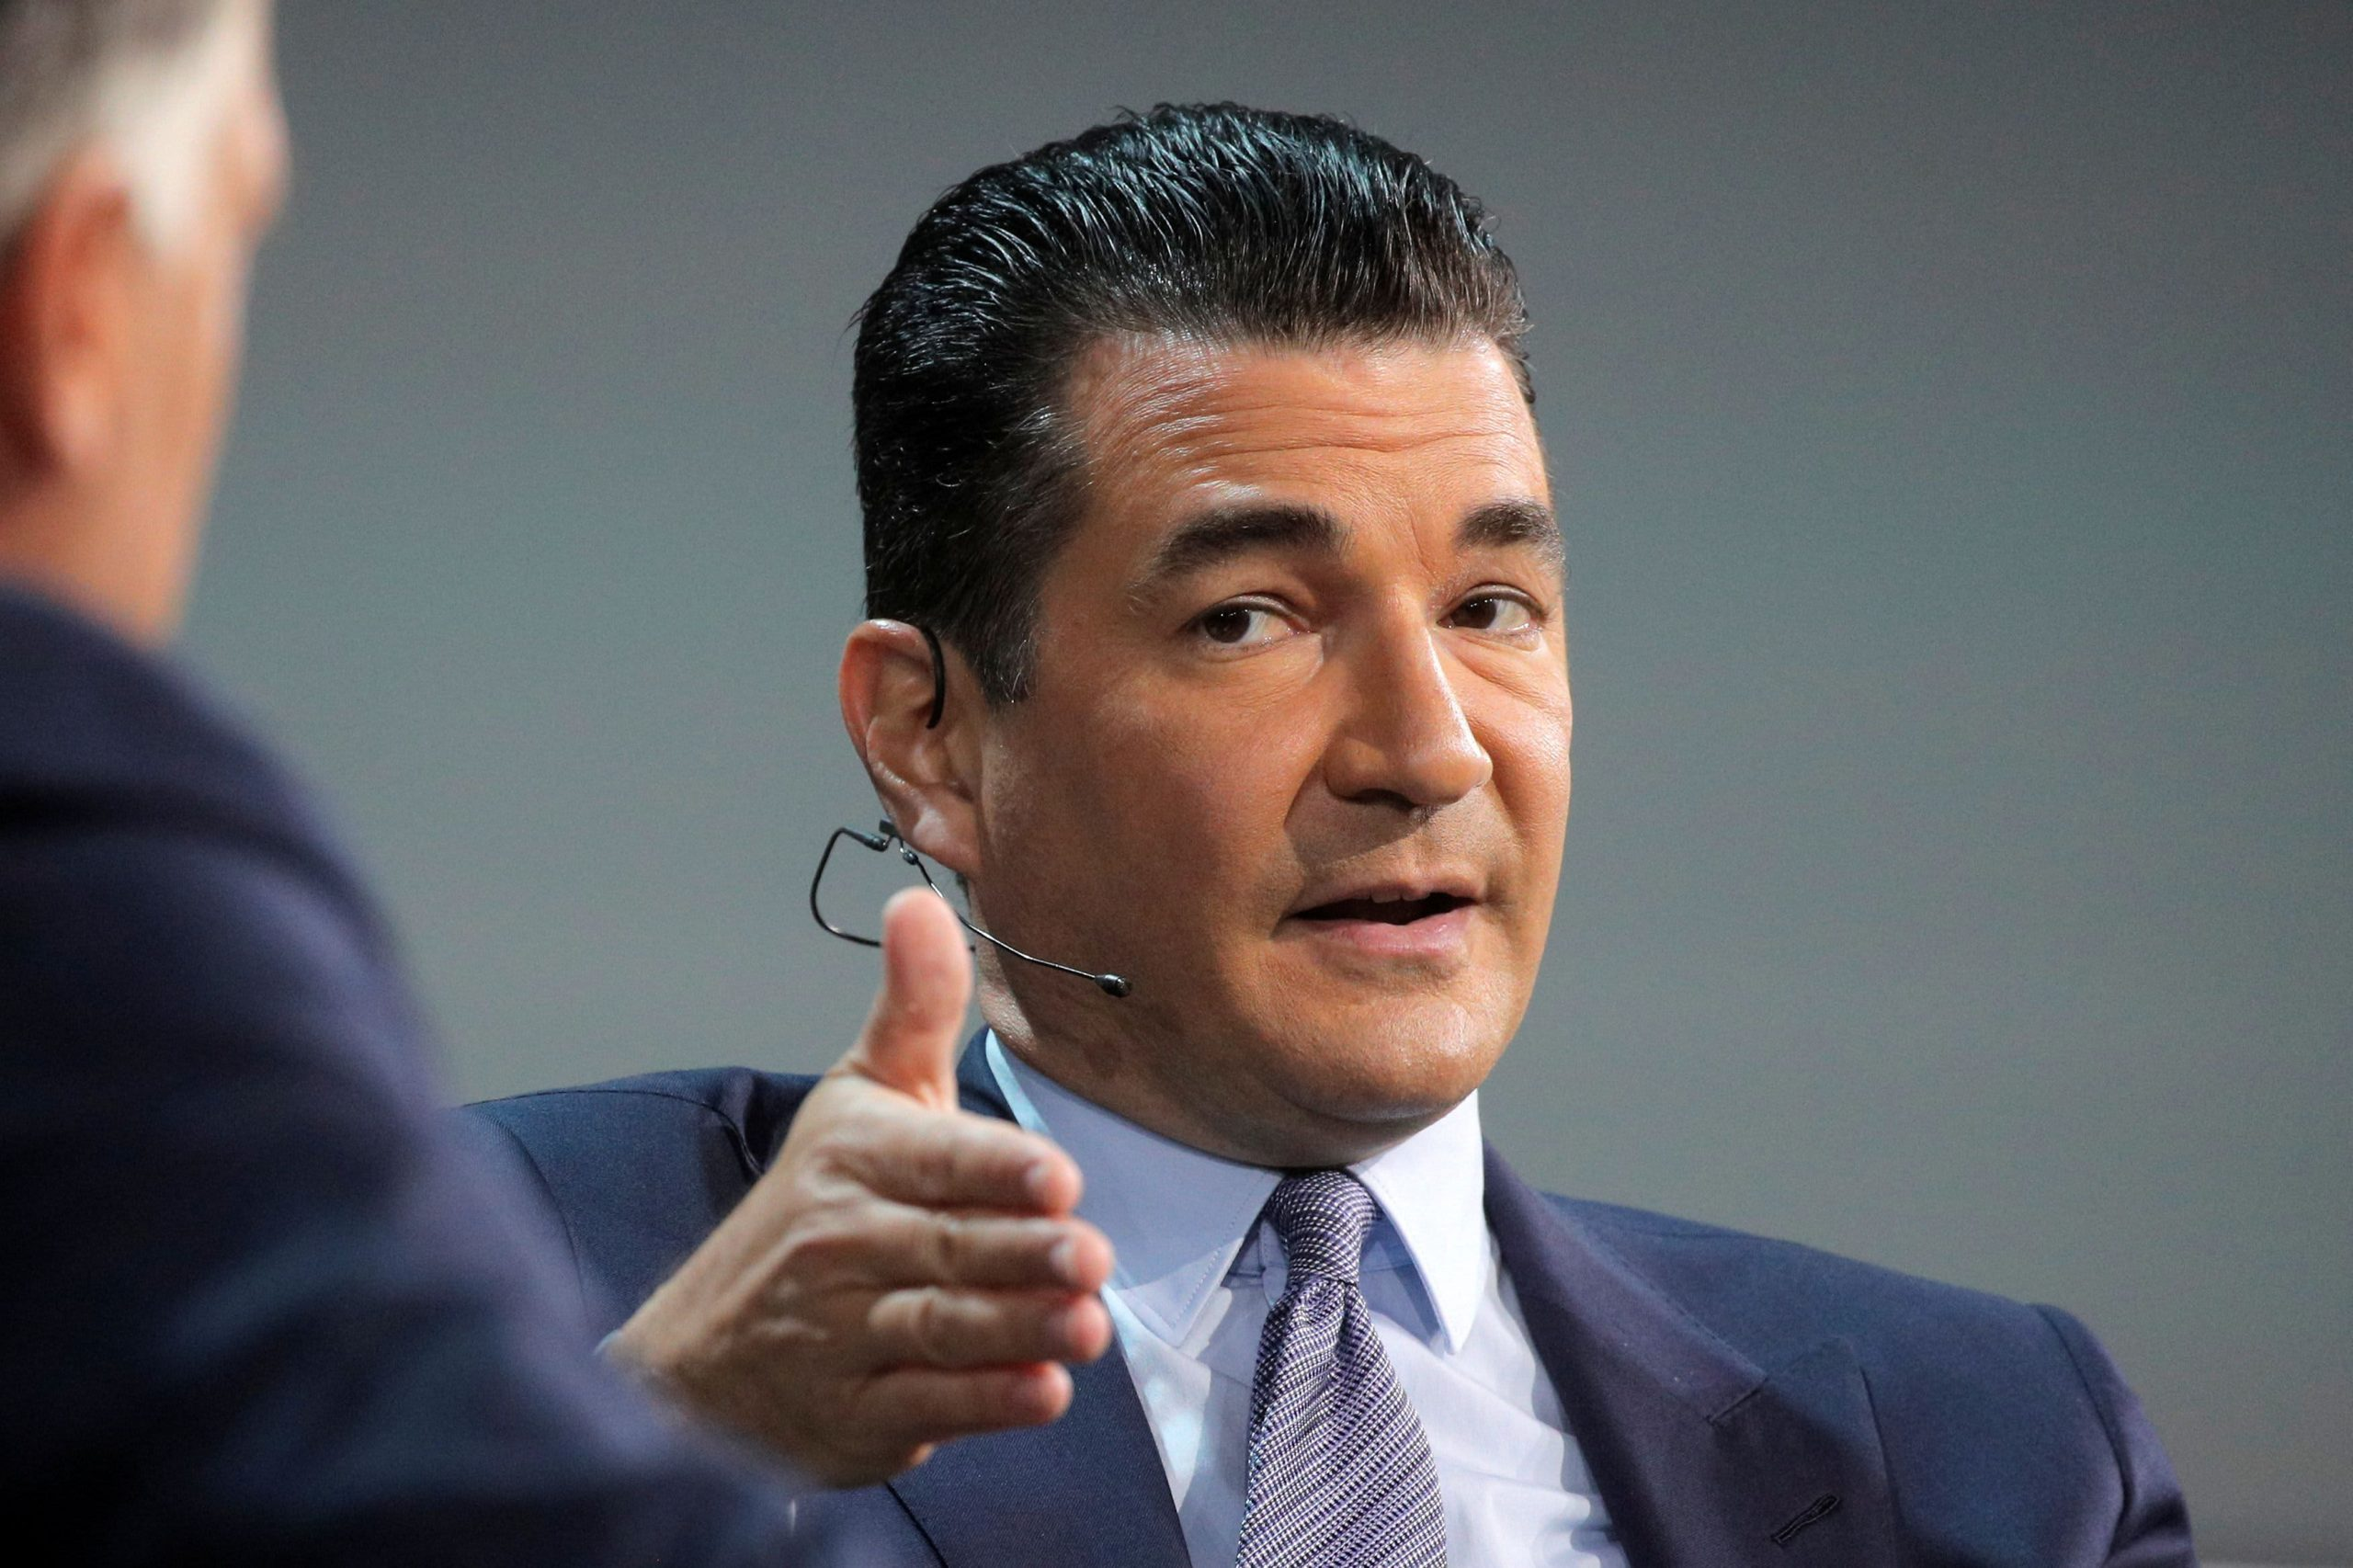 Dr. Scott Gottlieb expects families will gather for holidays